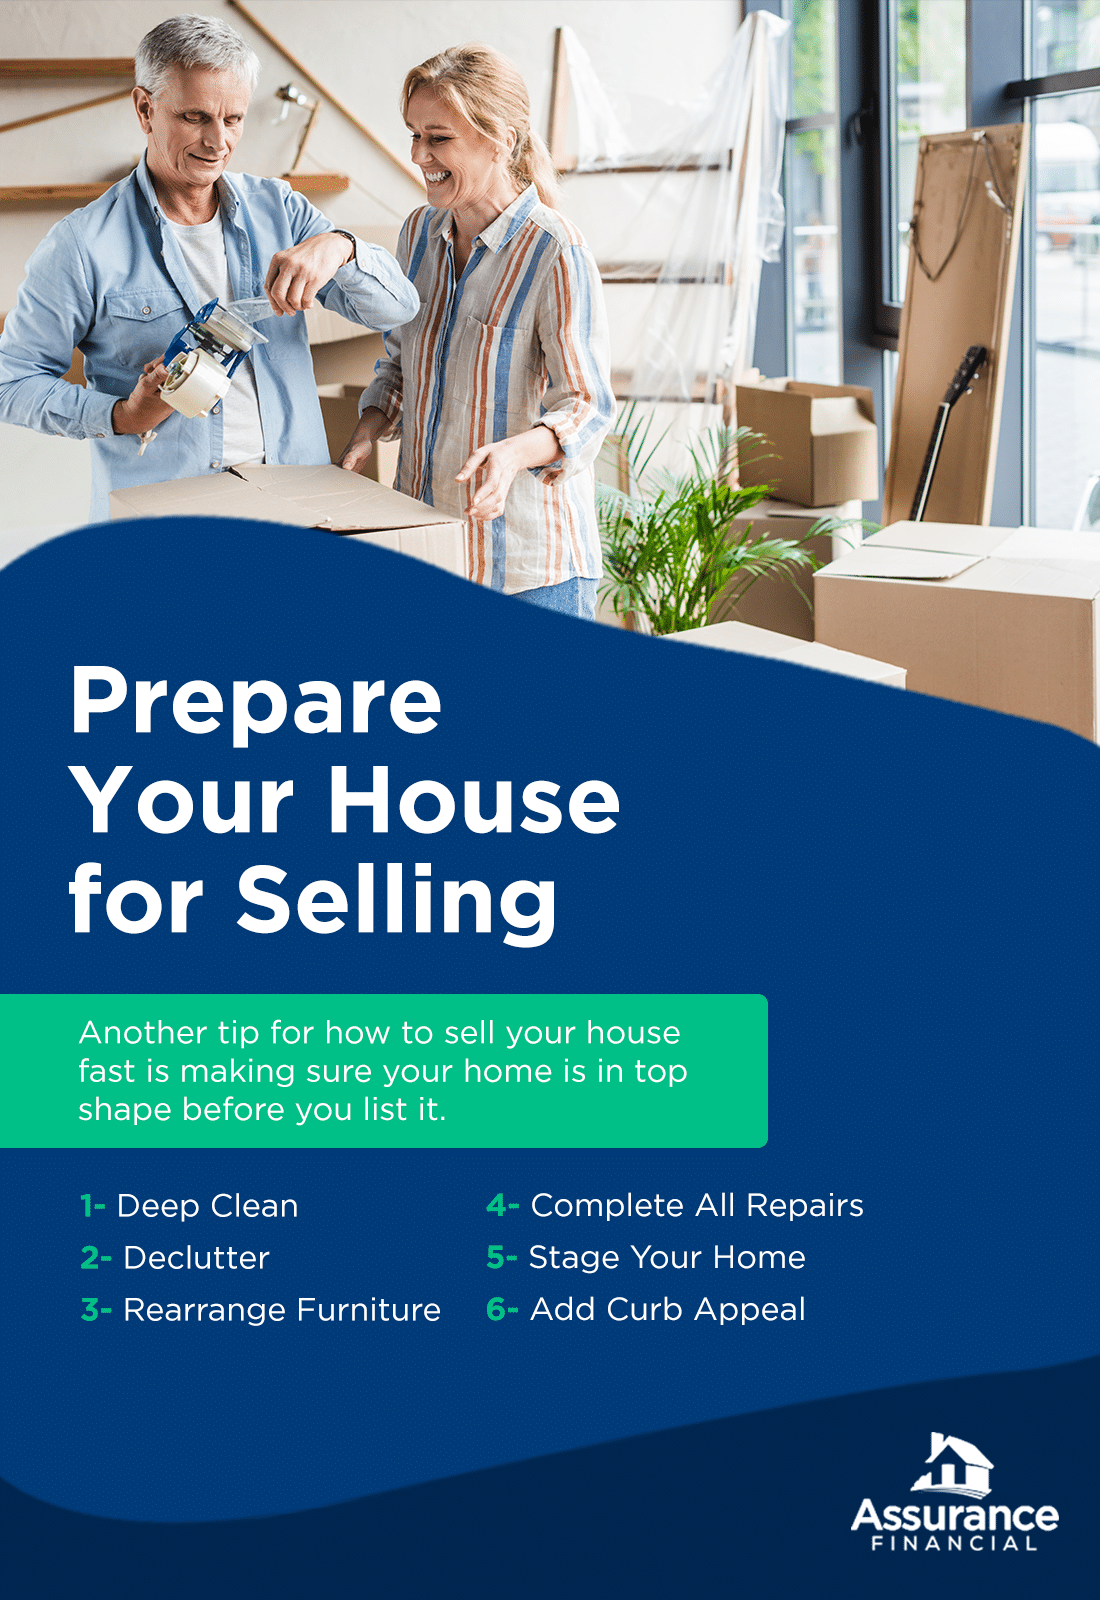 How to Prepare Your House for Selling